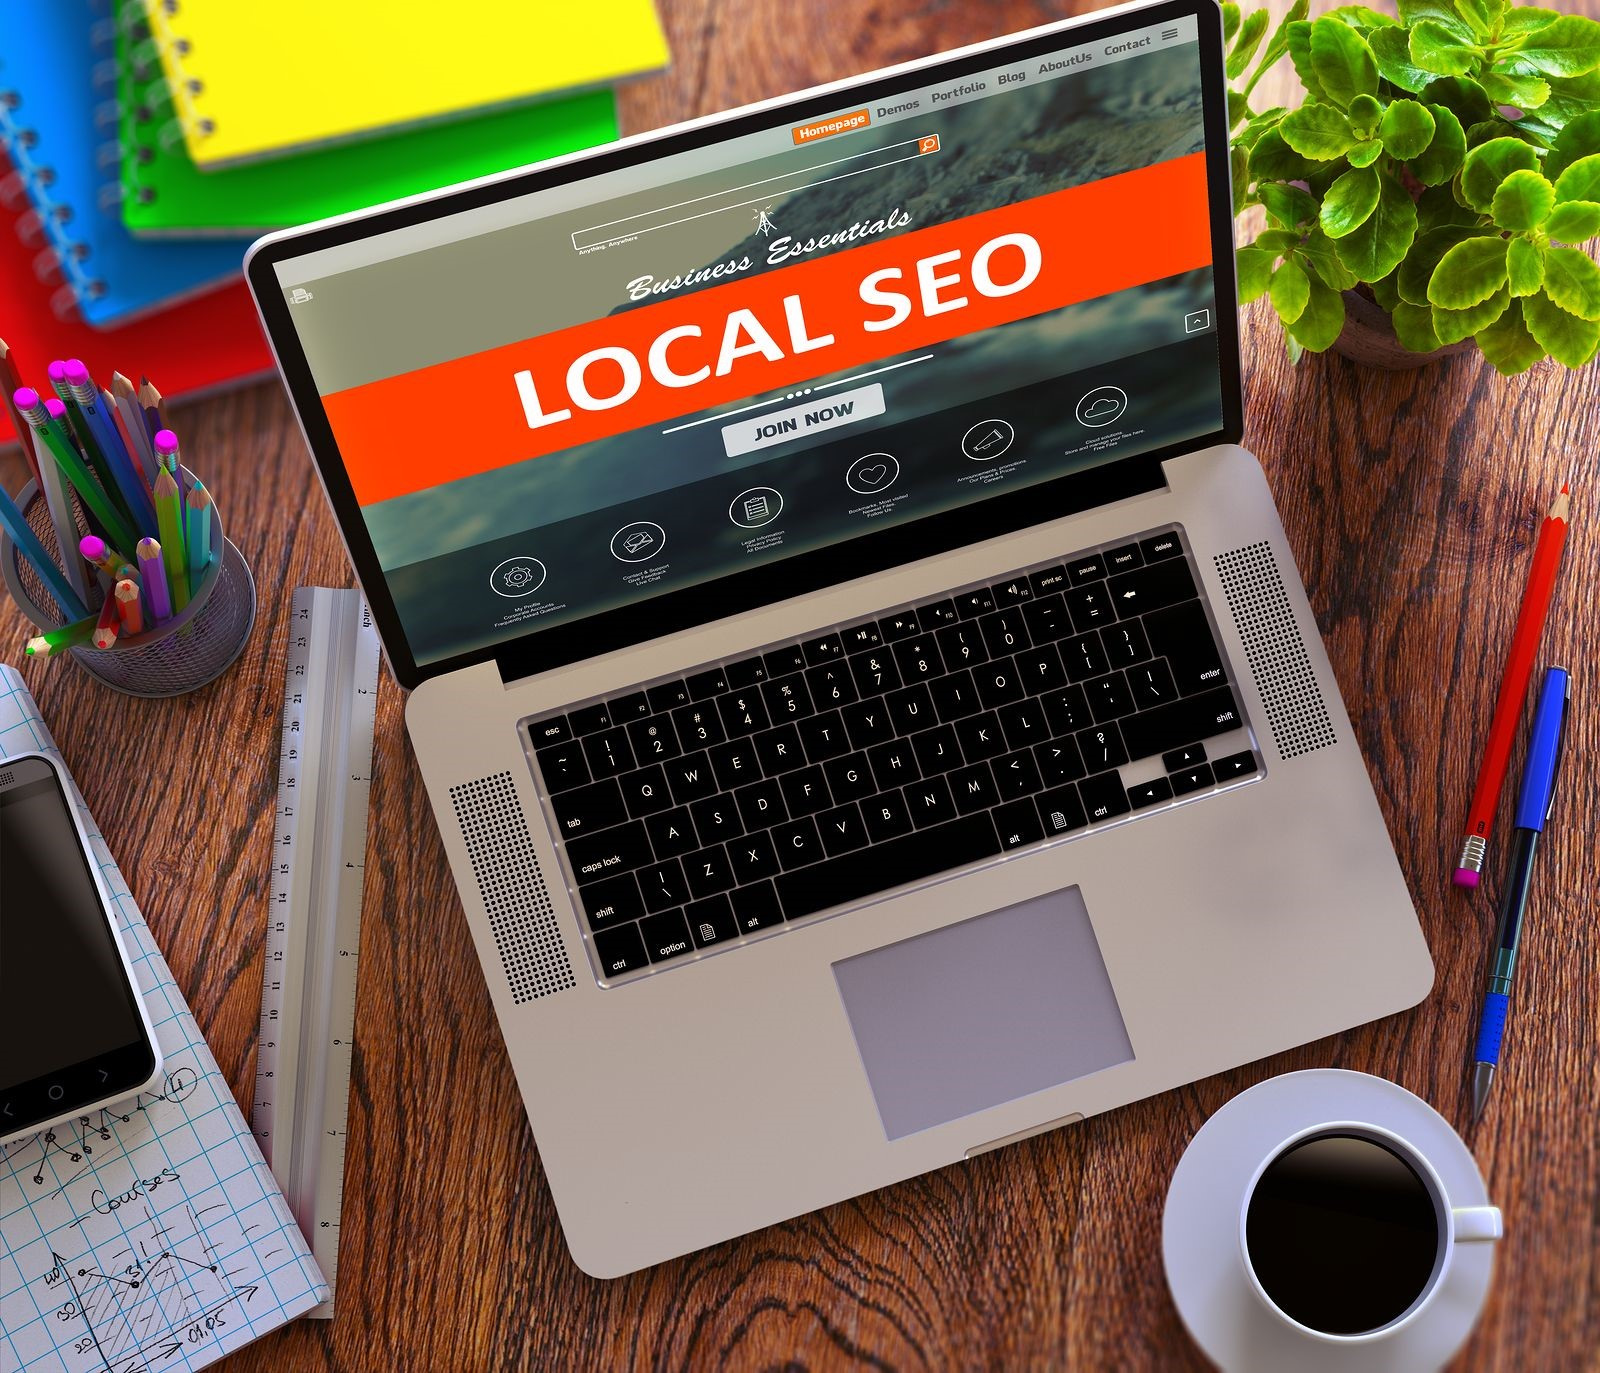 Oklahoma City SEO: From Their Laptop Screens to Your Revenue Streams